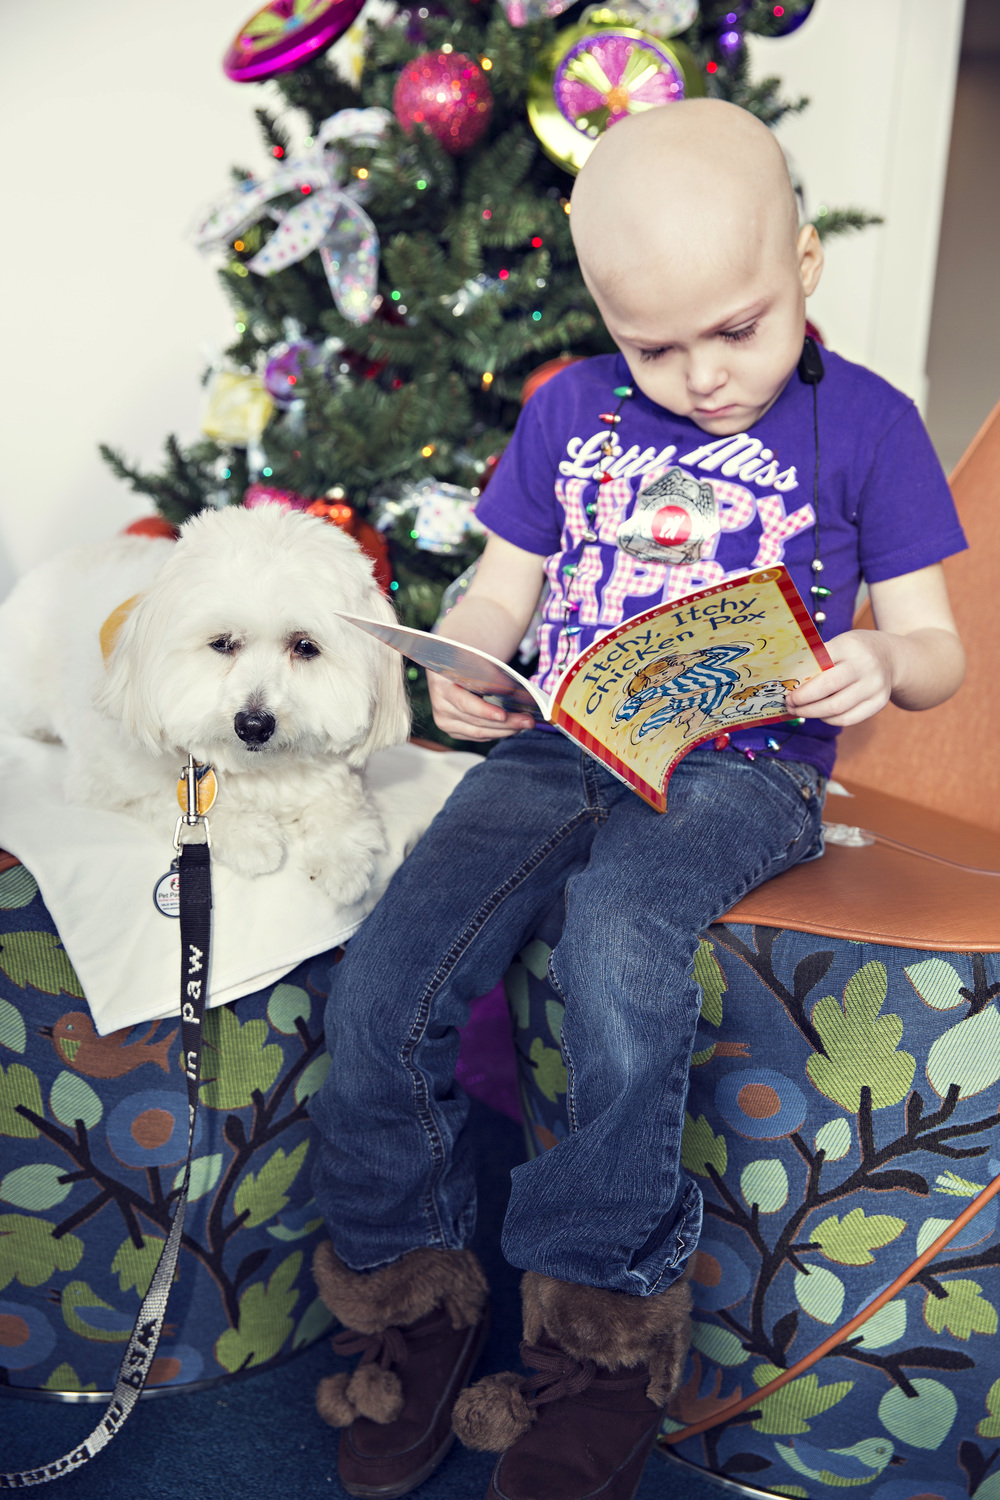 Teams go to Children's Hospital and read with the children. These kids light up when they see the Hand in Paw teams walking down the hall!  This is Buddy, he loves sweet kids and being read to!